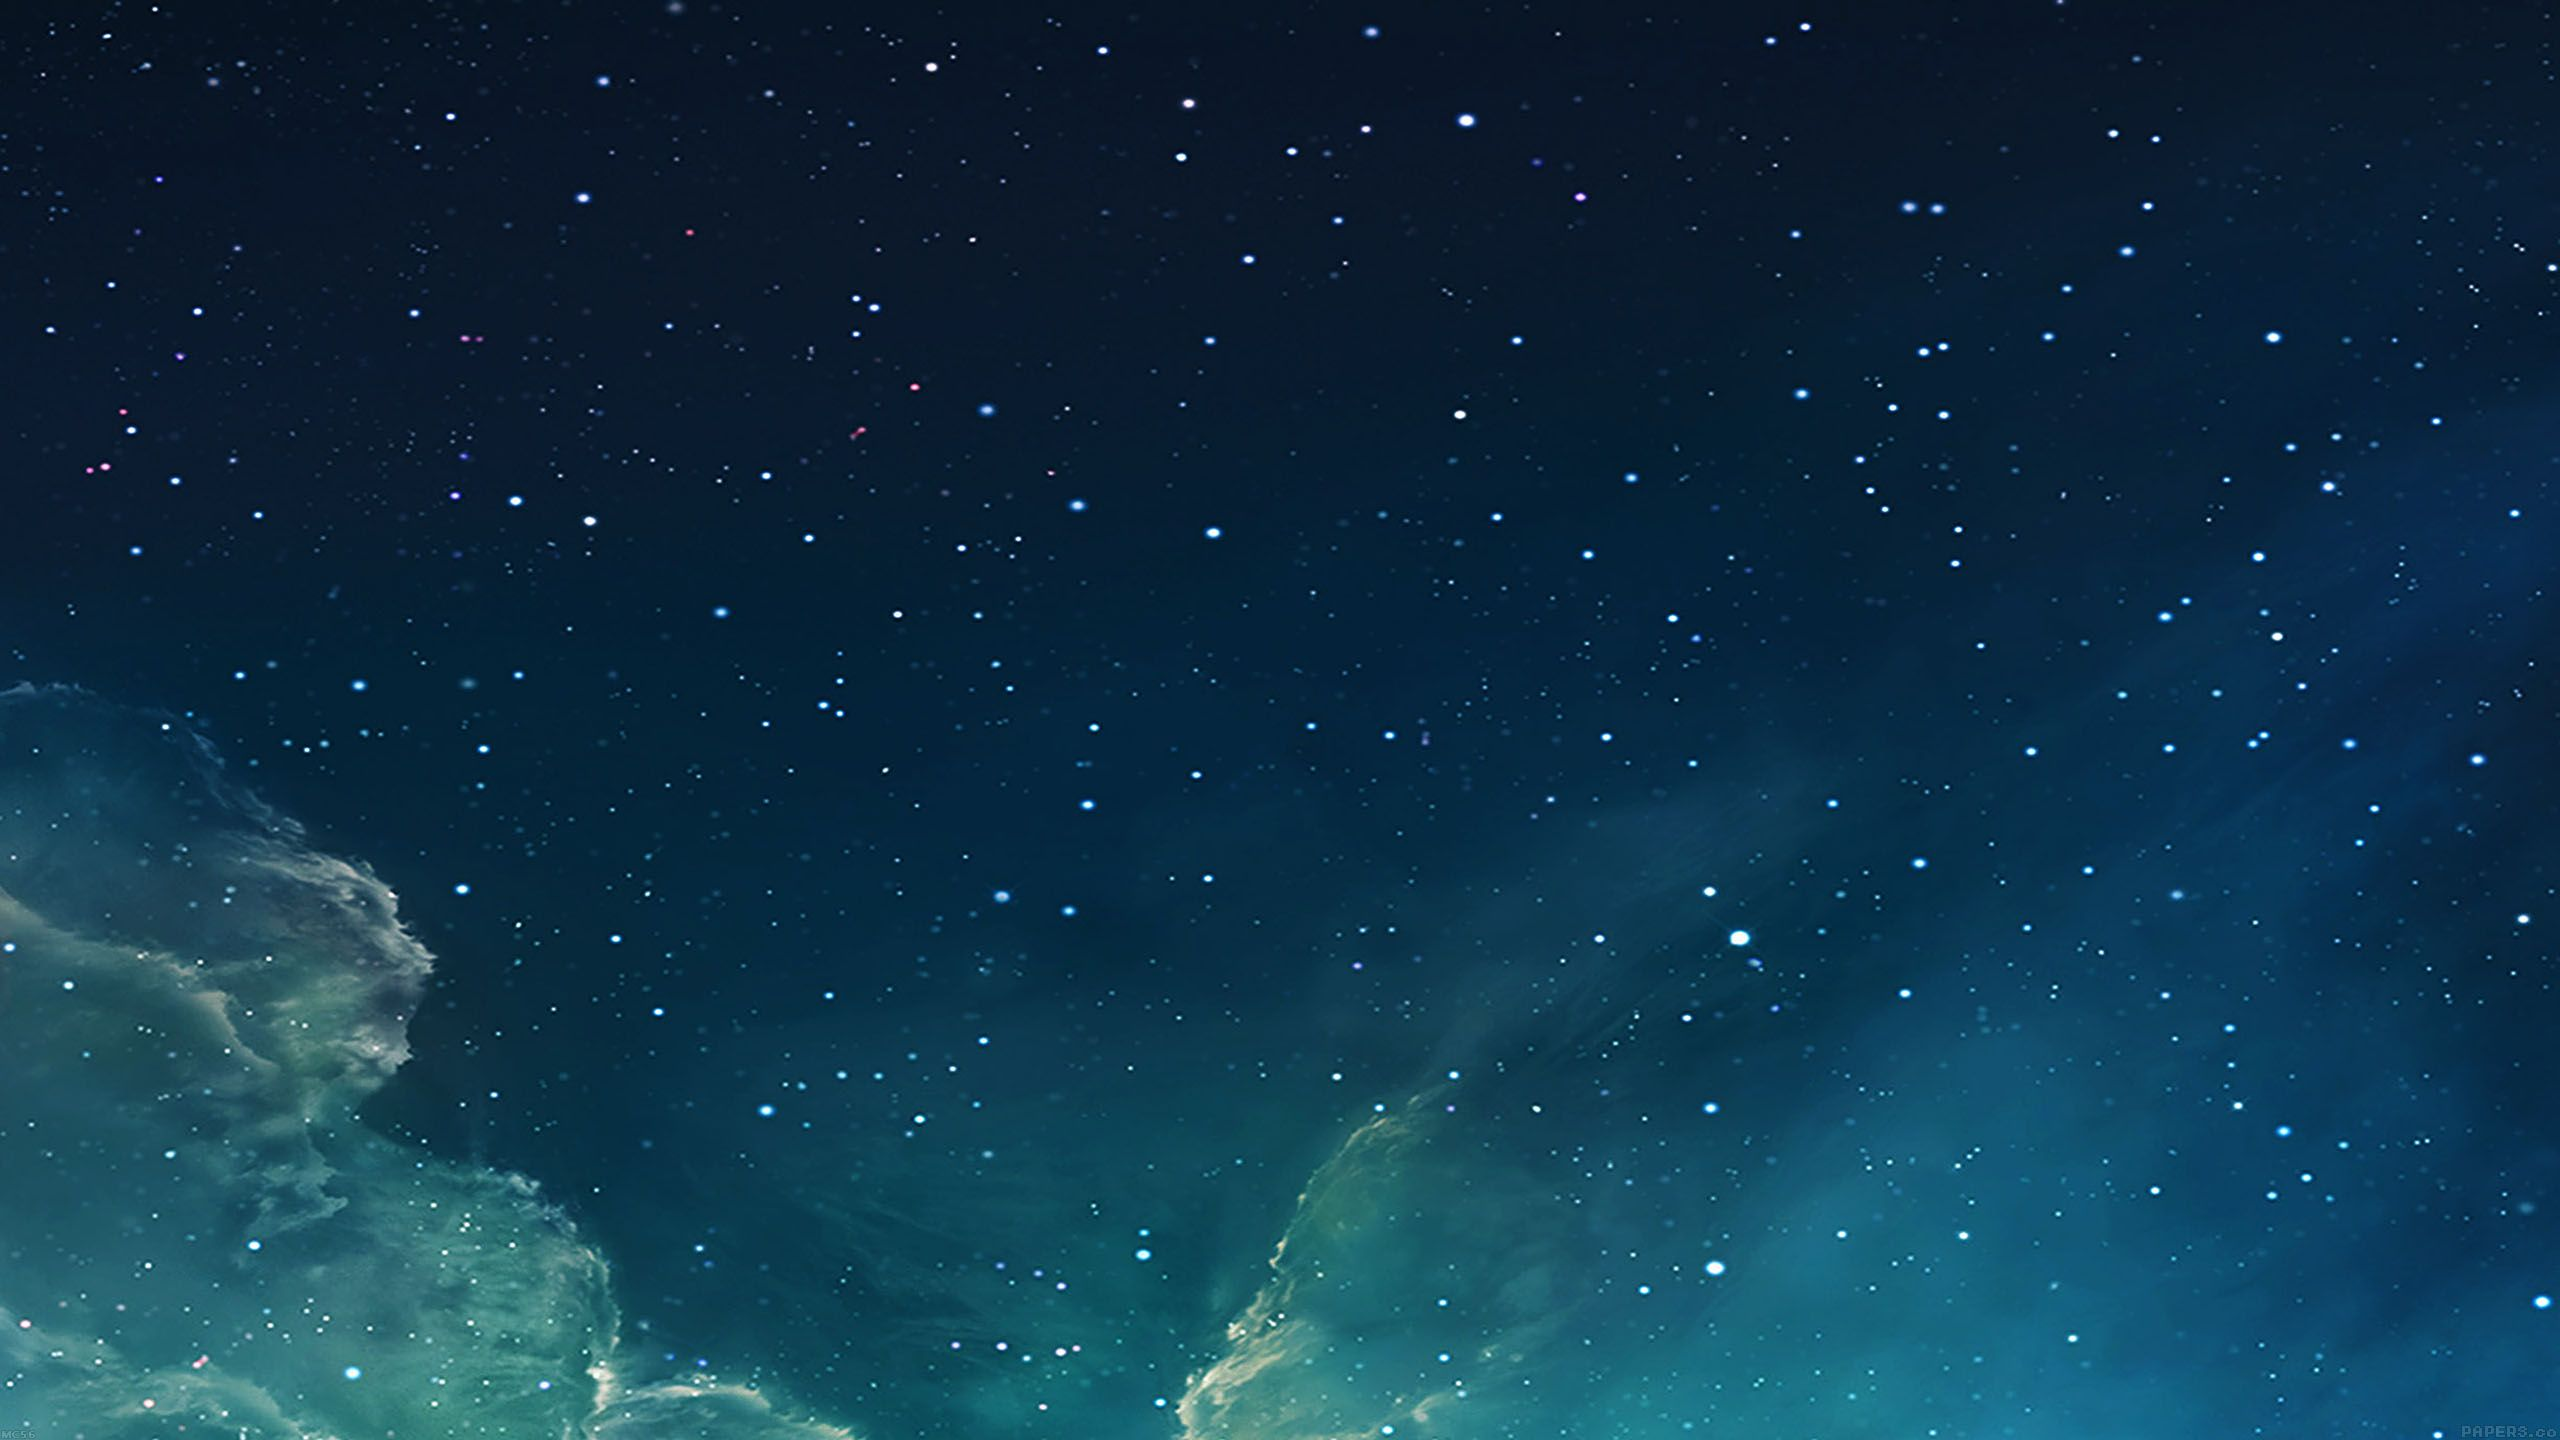 Galaxy Wallpaper 1080p #Ios